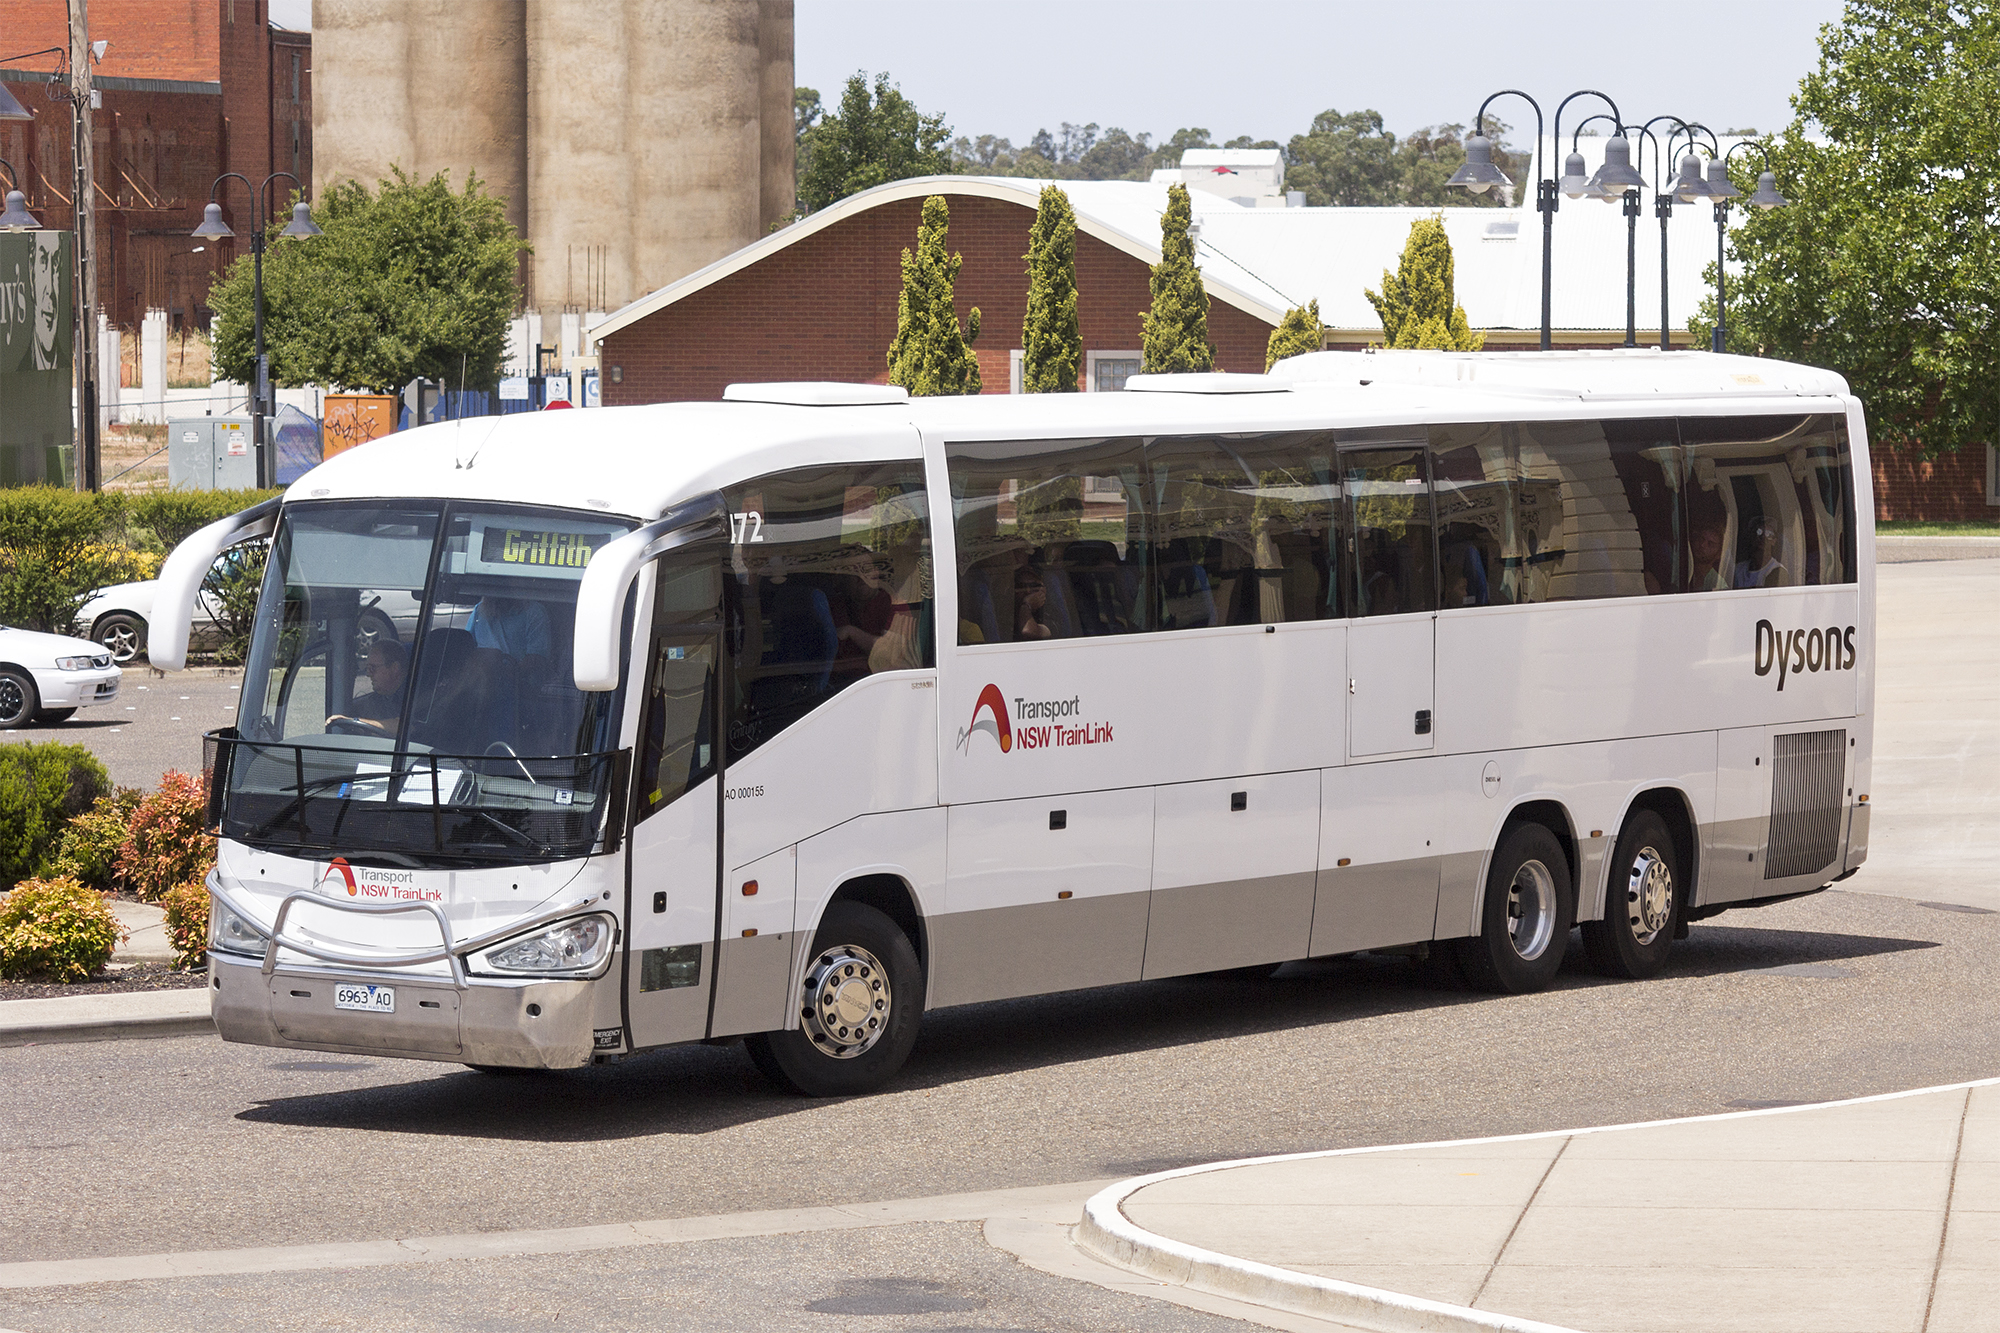 Scania Irizar Manual Wiring Diagram Array File Dysons 6963 Ao In Nsw Trainlink Livery Century 3700 Rh Commons Wikimedia